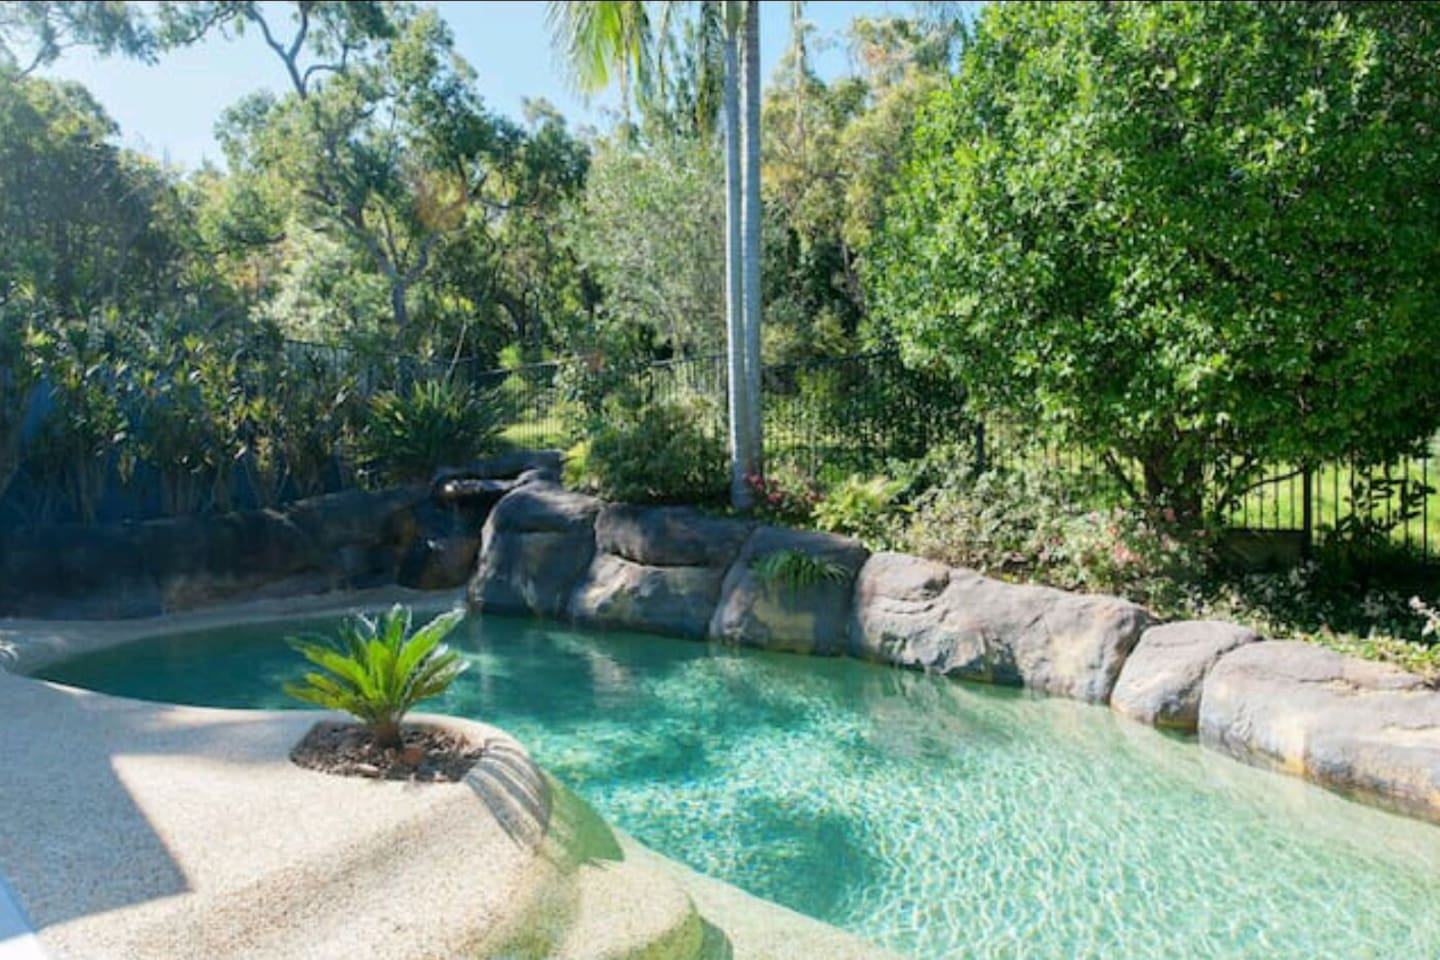 Salt water, solar heated resort style pool with waterfall. Available at all times for Poppy Magnolia guests.